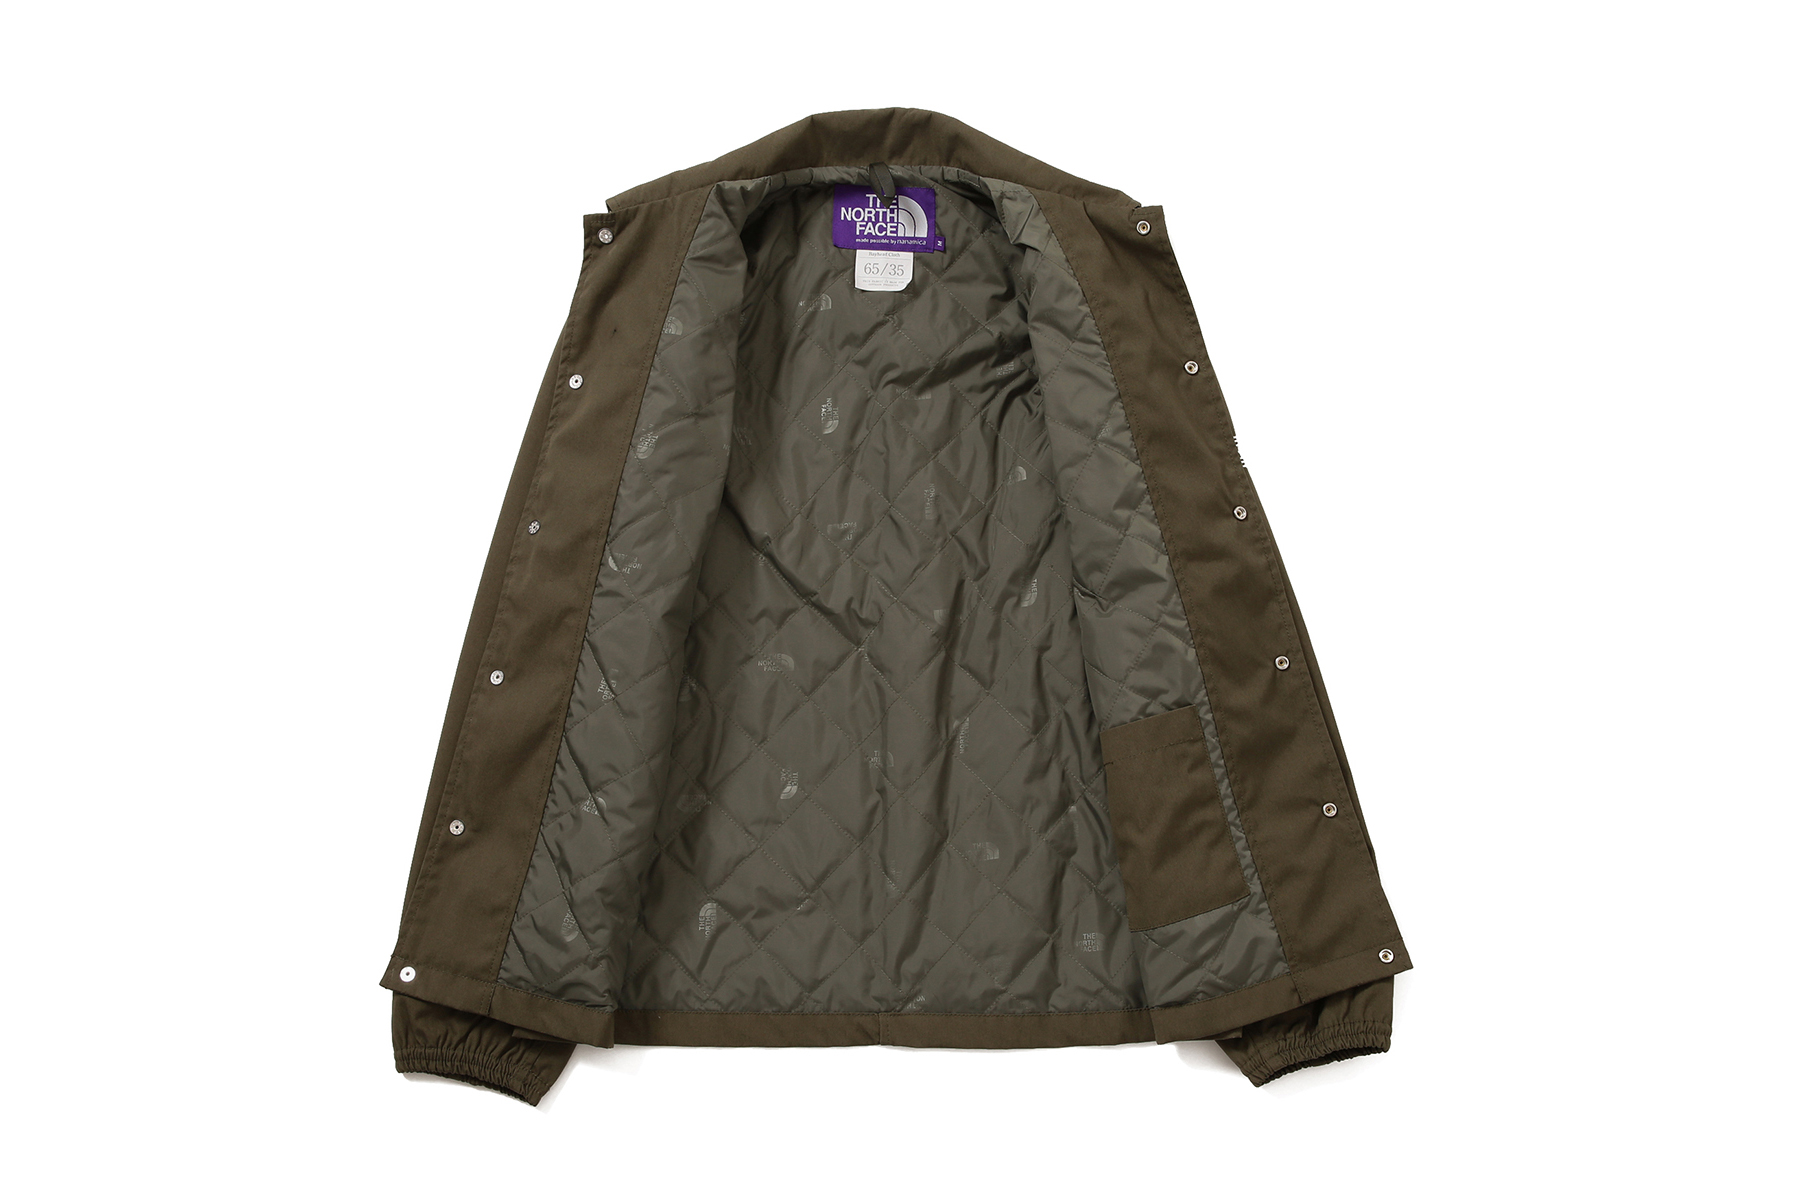 BEAMS x THE NORTH FACE PURPLE LABEL FW18 Outerwear